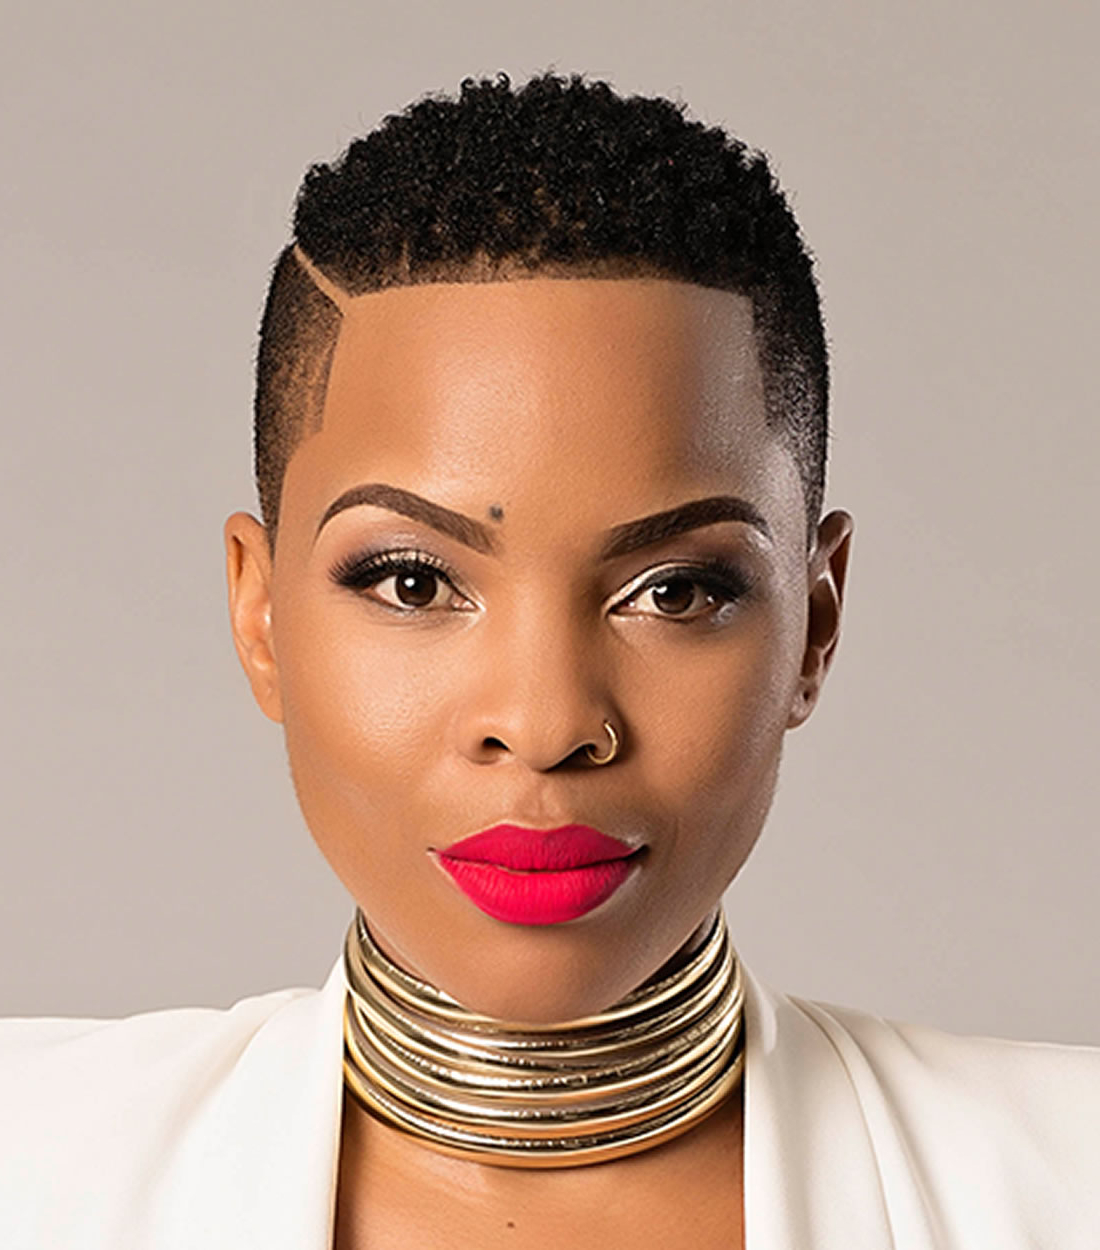 32 Exquisite African American Short Haircuts And Hairstyles For 2018 Throughout Short Haircuts For African American Women With Round Faces (View 7 of 25)